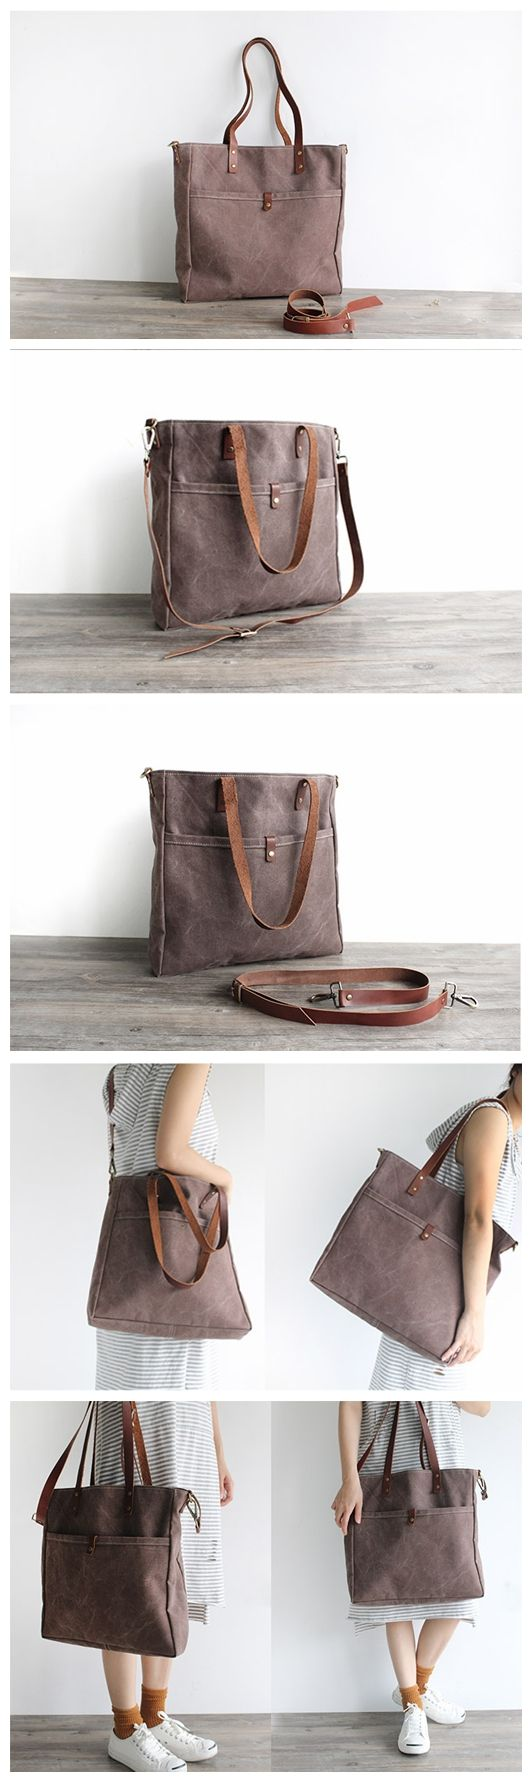 Handmade Canvas Tote Bag Messenger Bag Shoulder Bag Handbag 16000